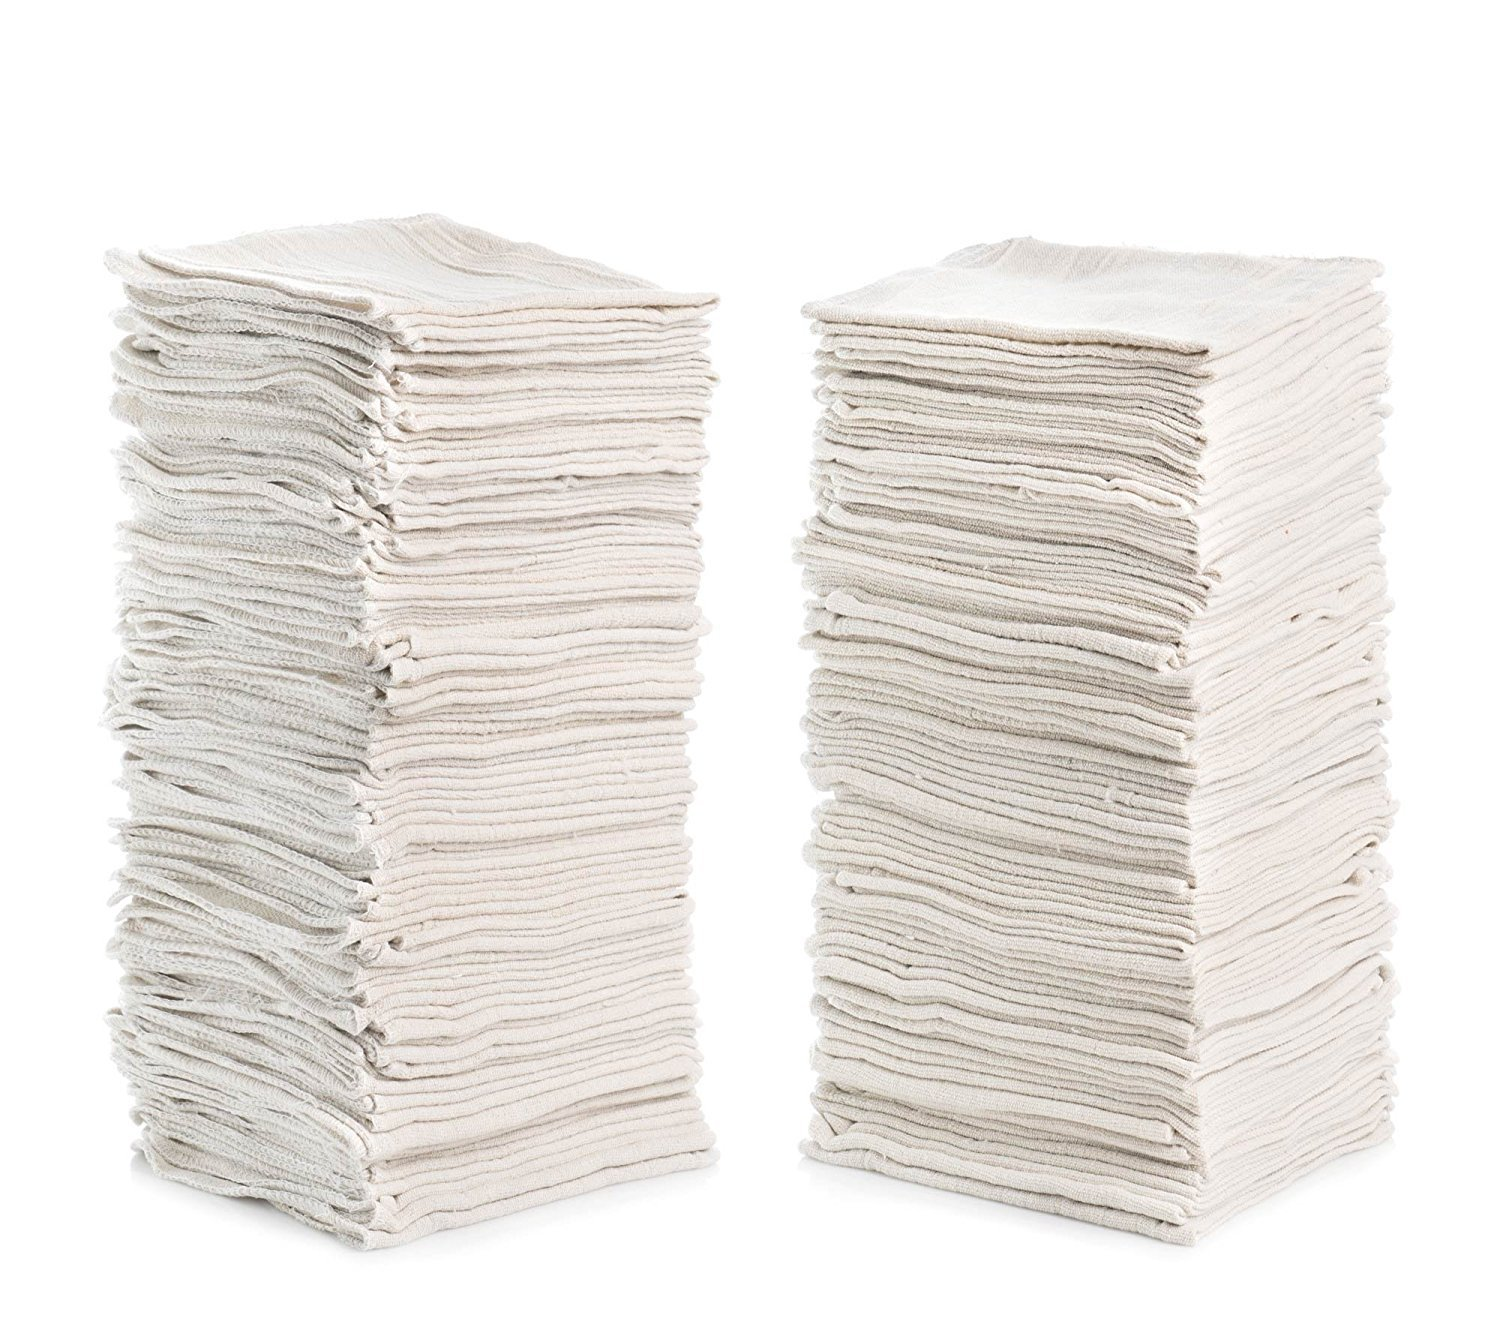 """Shop Towels (Pack of 100) 12"""" X 14"""" Reusable Cotton Towels - Perfect for Cleaning, Home, Mechanic, Automotive, Machines and Janitorial (Natural/White)"""